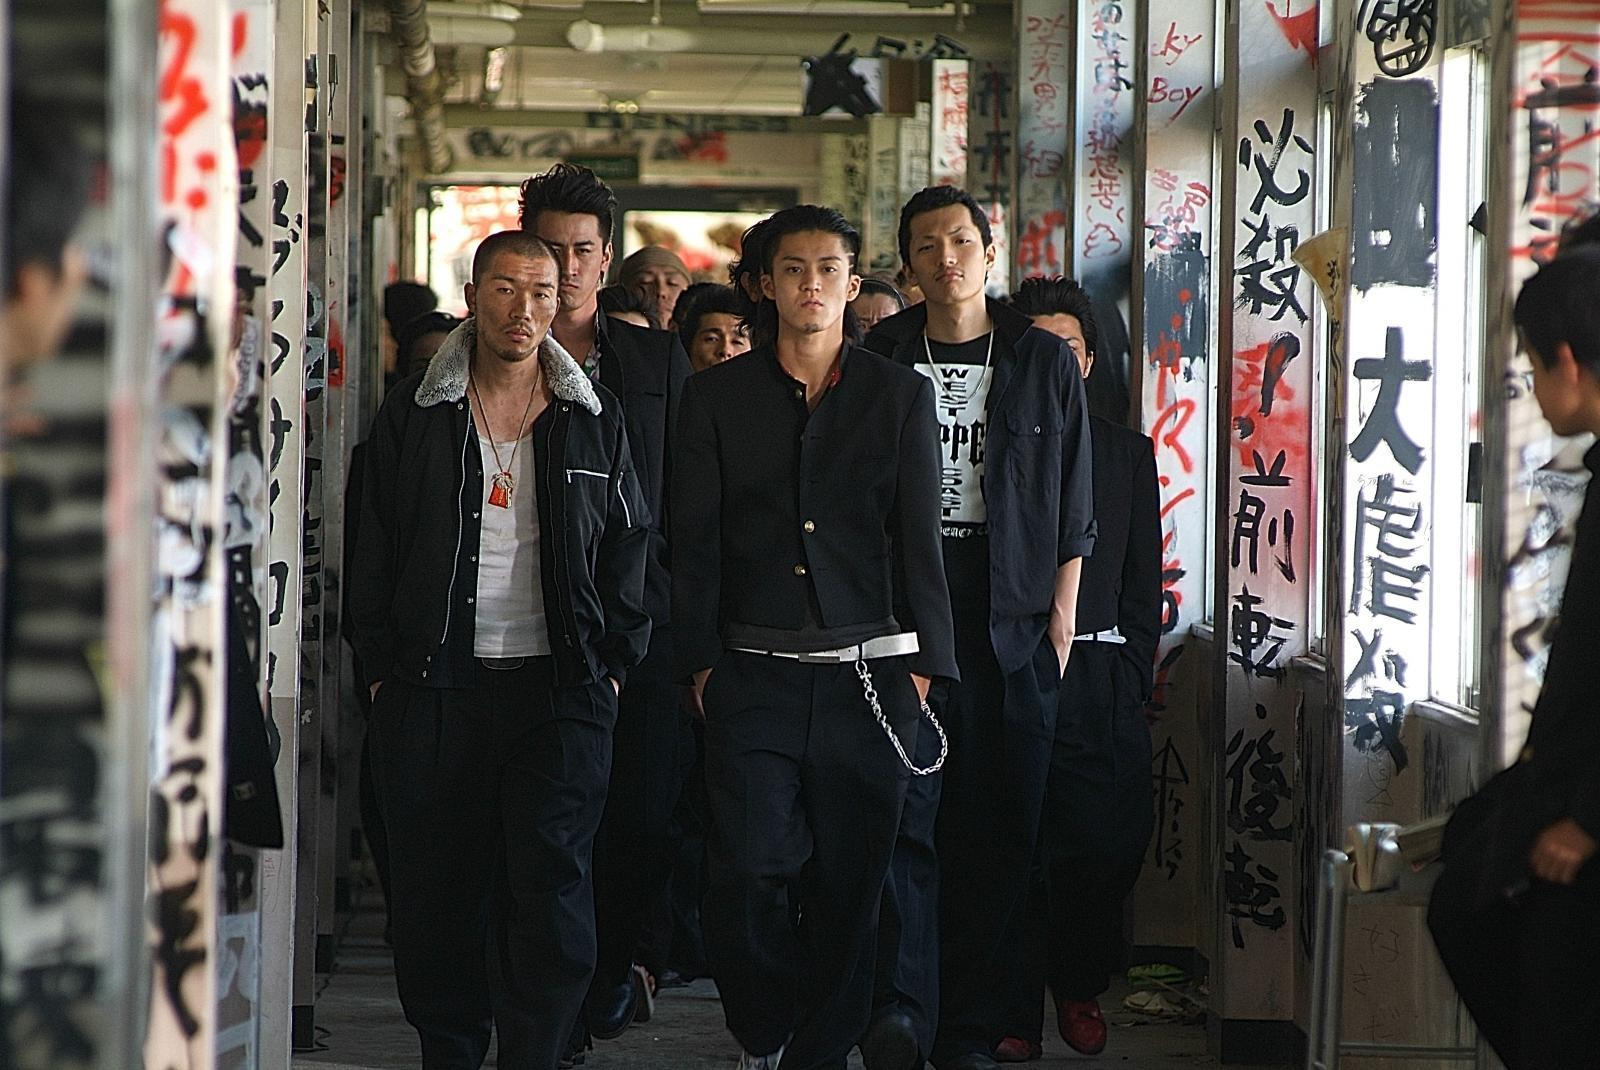 Cosplay Genji Crows Zero